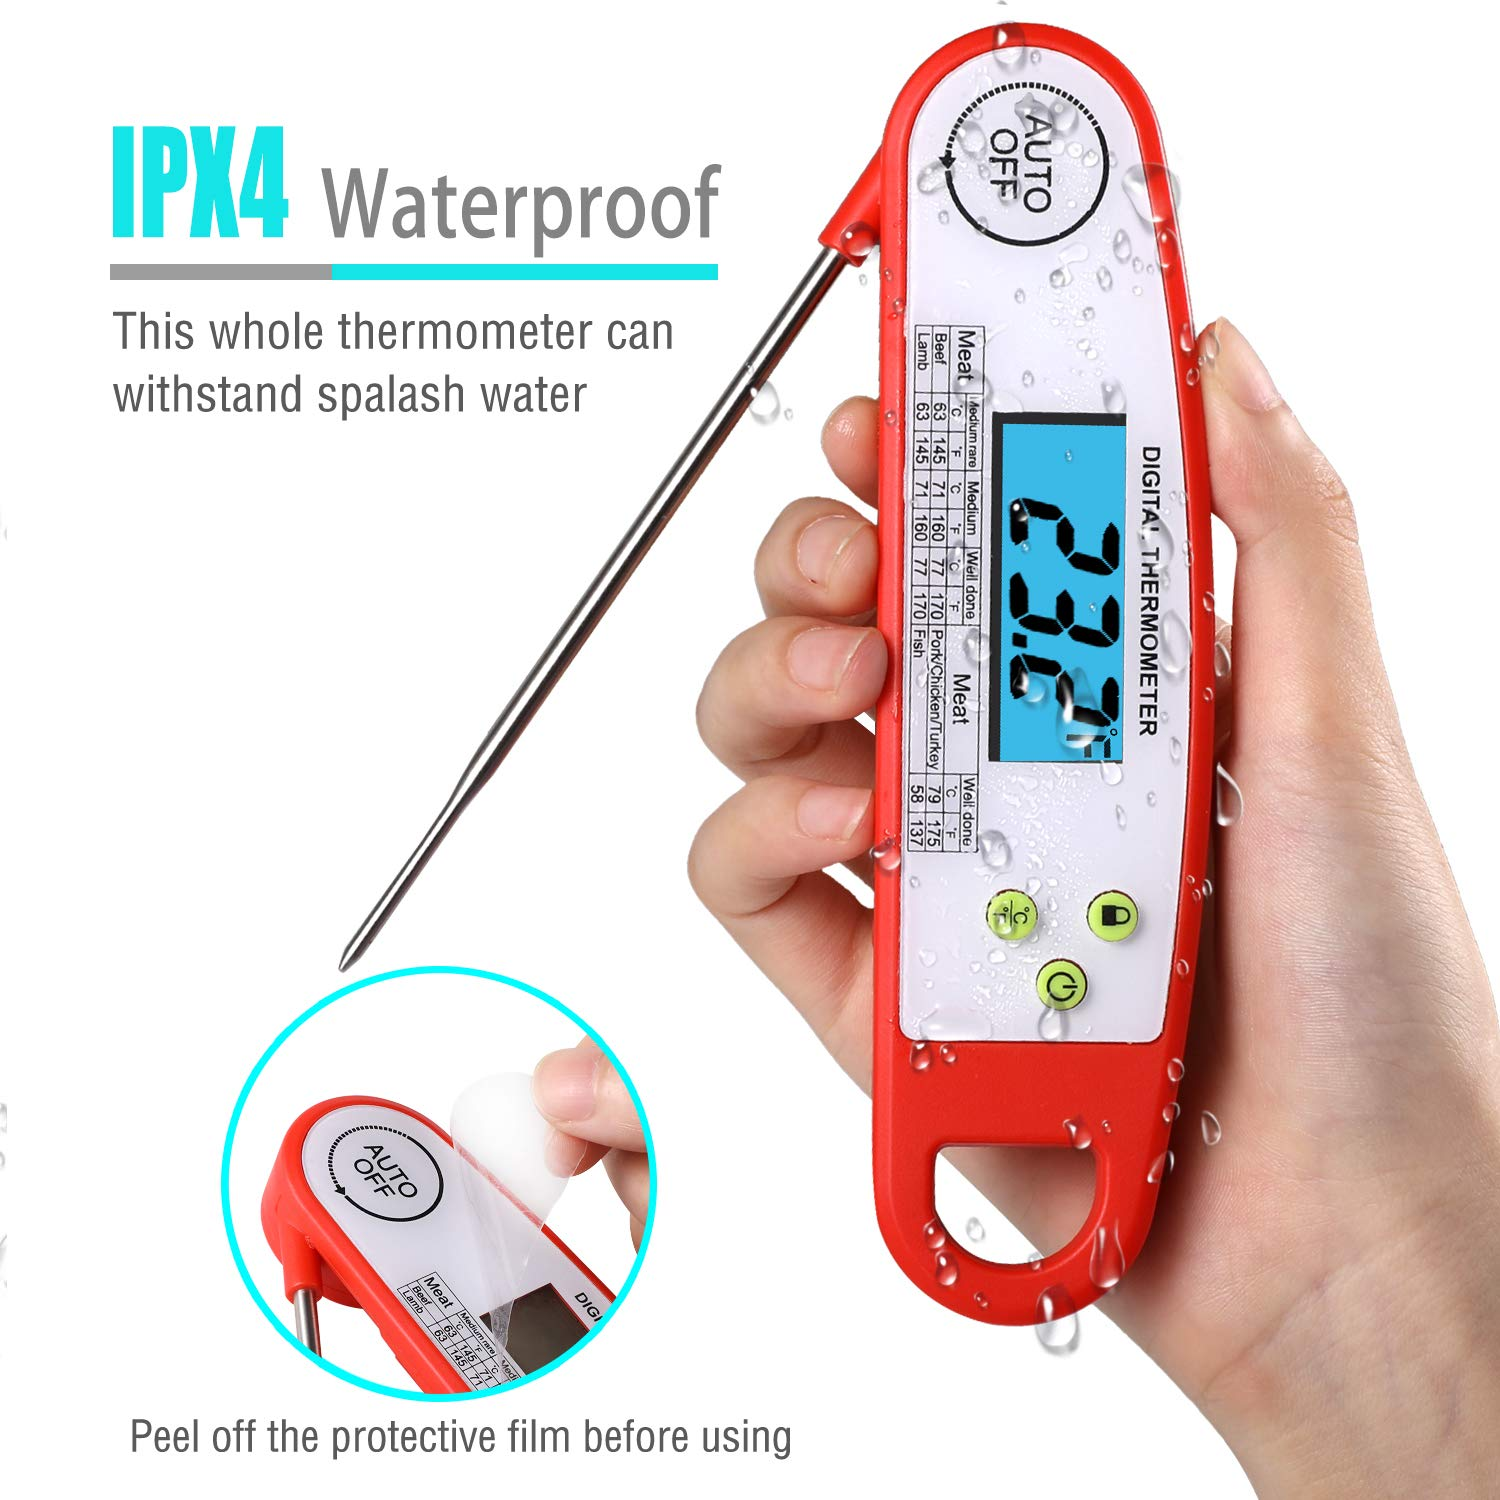 Austruke Instant Read Meat Thermometer-Waterproof Digital Meat Thermometer Super Fast Instant Read Thermometer with Backlight & Calibration. For Food, Candy, Milk, Tea, BBQ, Grill Smoker.